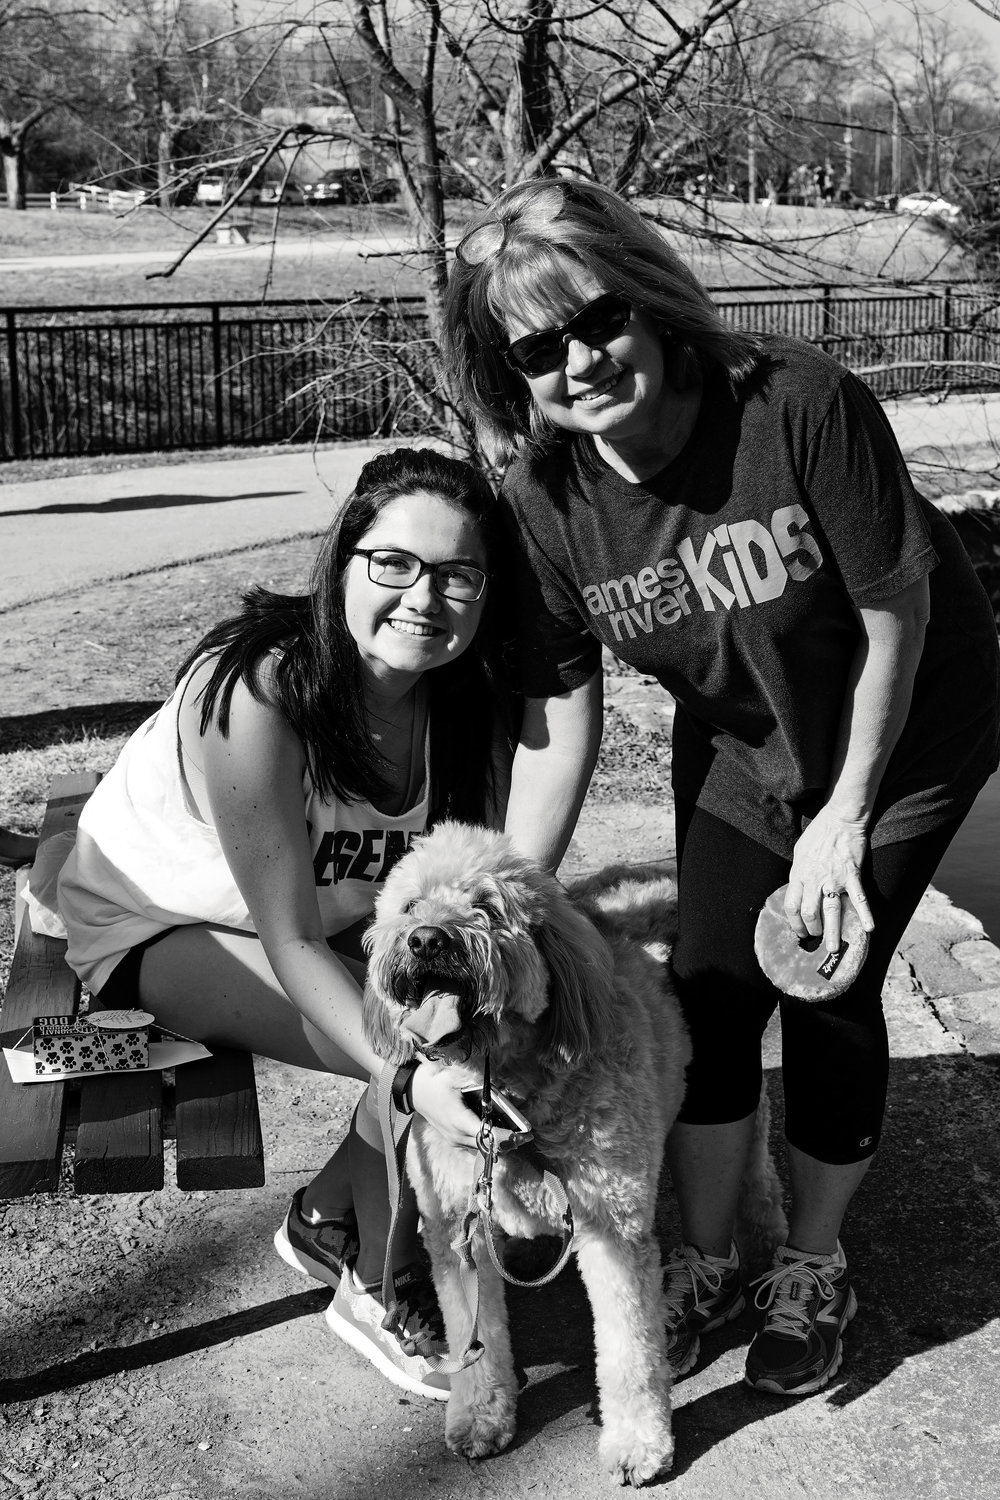 Natalie P. and Cheri P. with Charlee the dog. - Home for the weekend, Natalie spent quality time with her mother and Charlee at Sequiota Park.